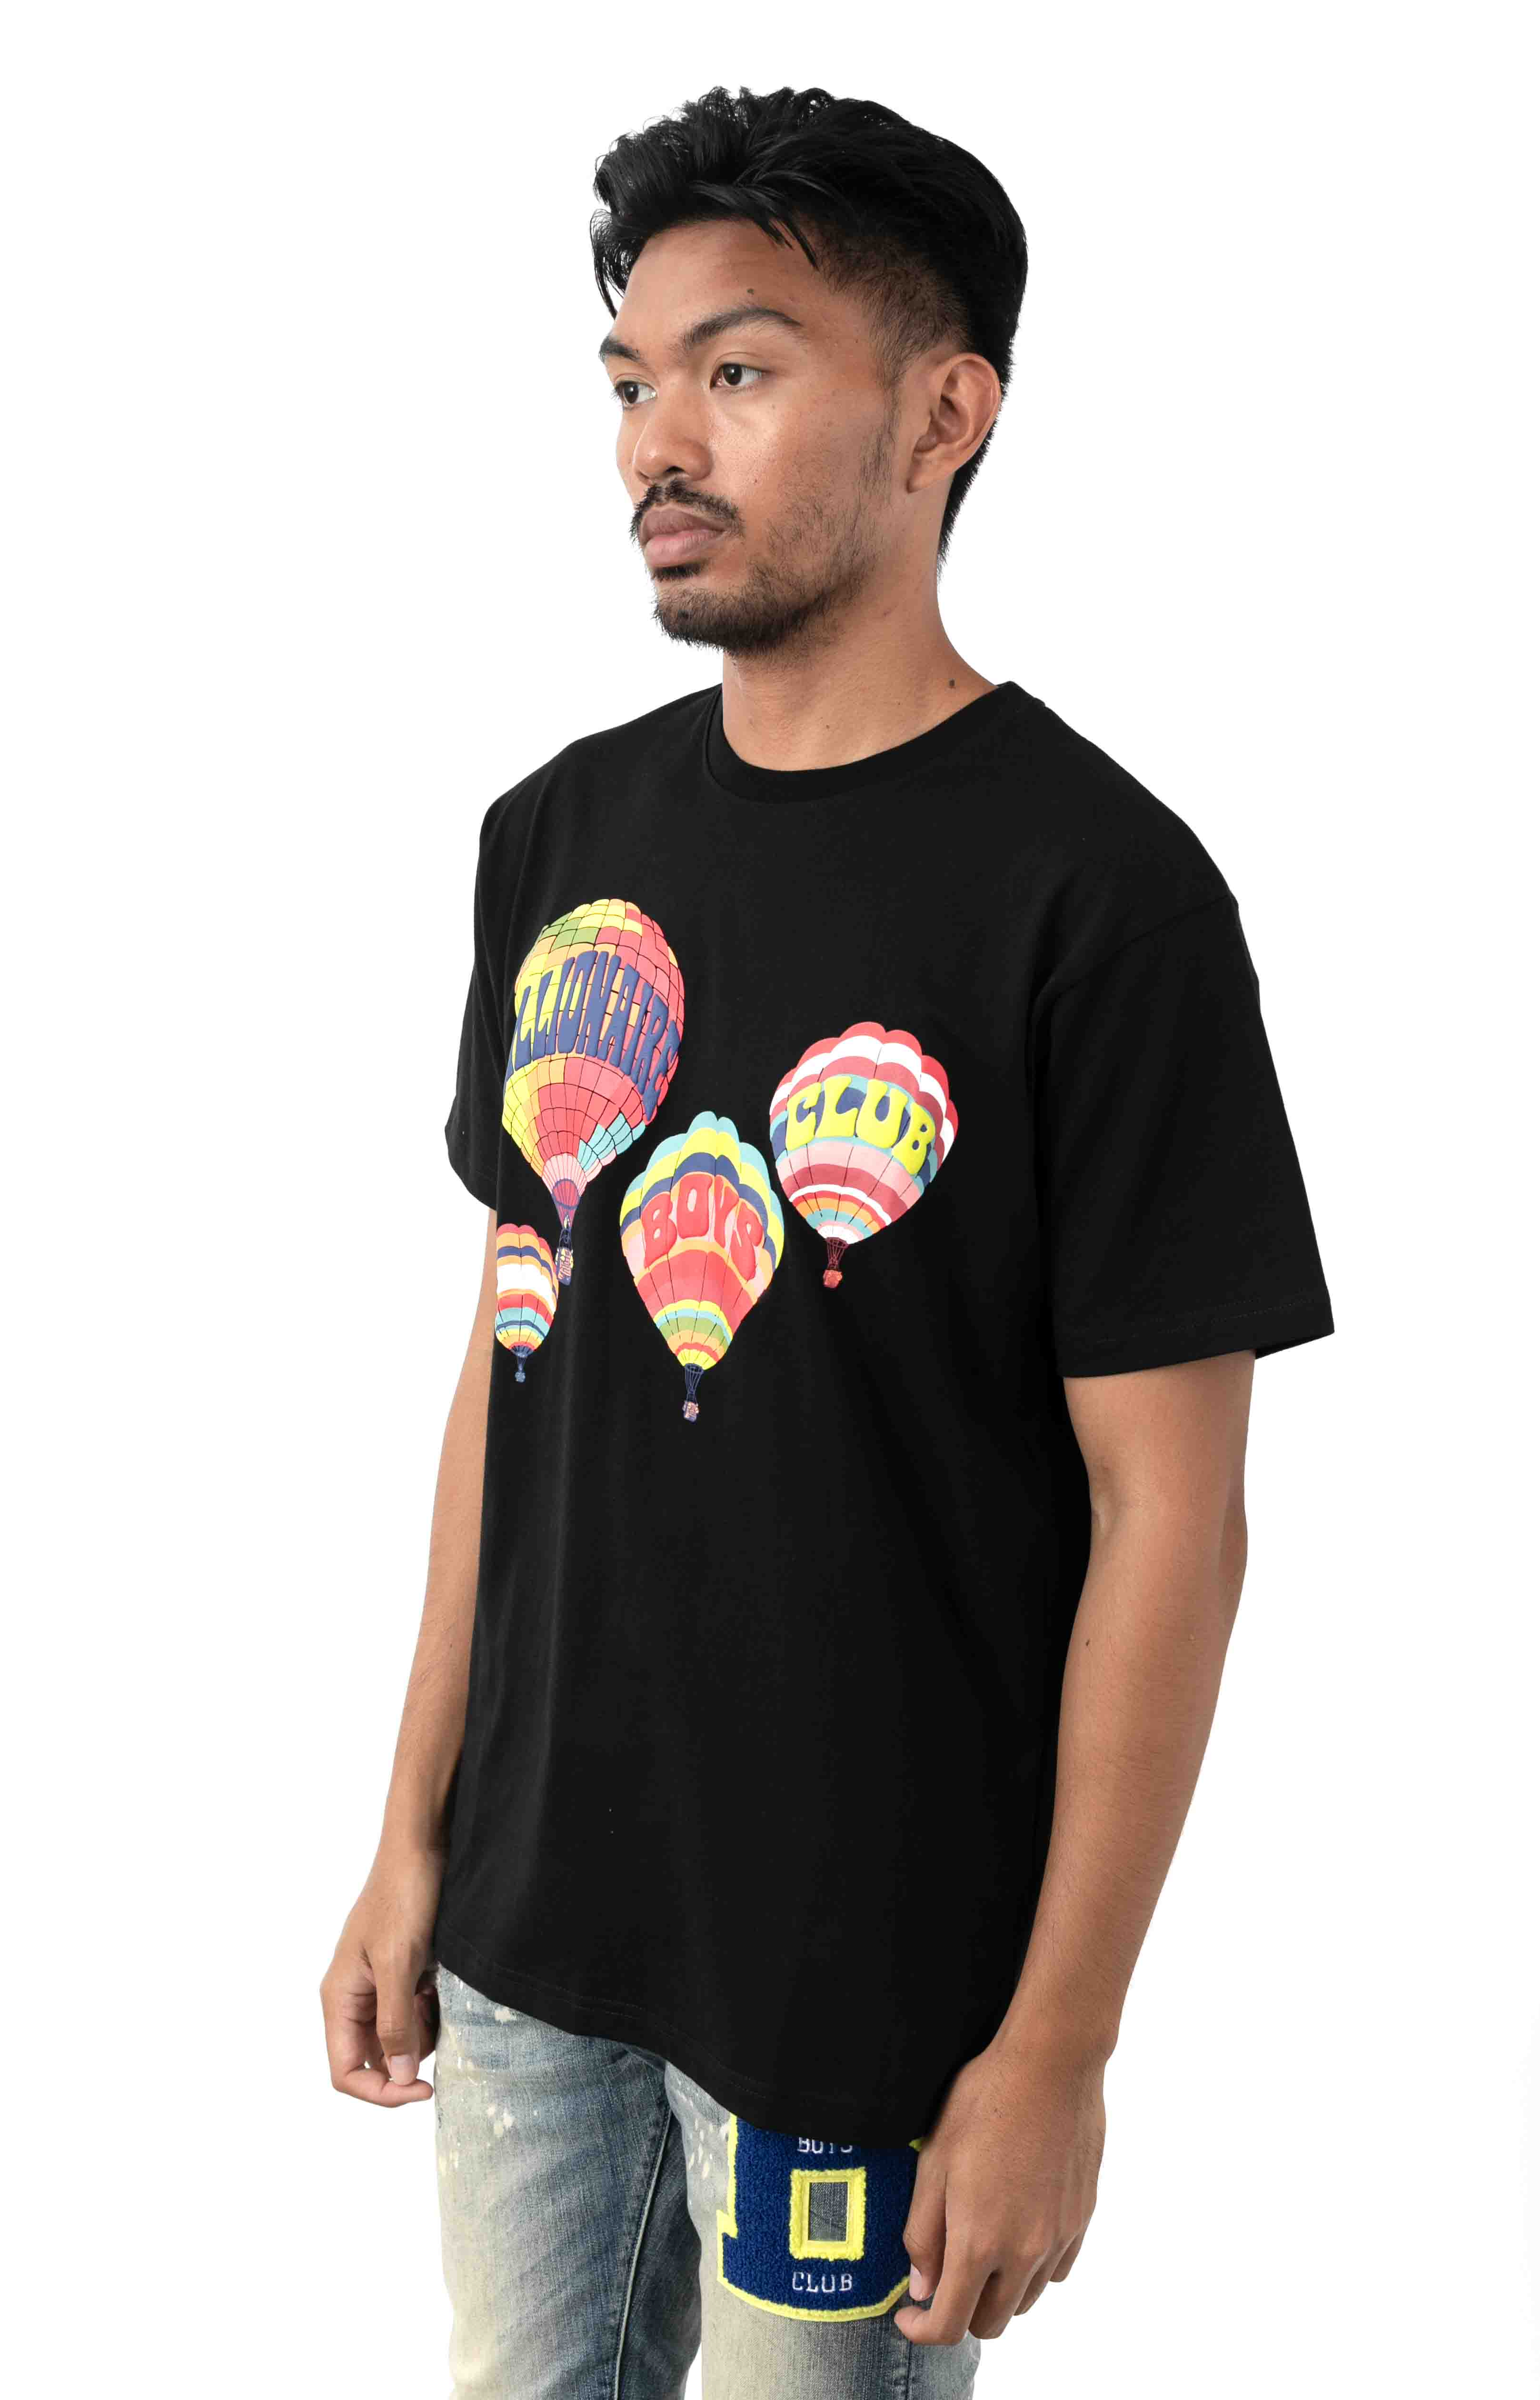 BB Hot Air T-Shirt - Black 2